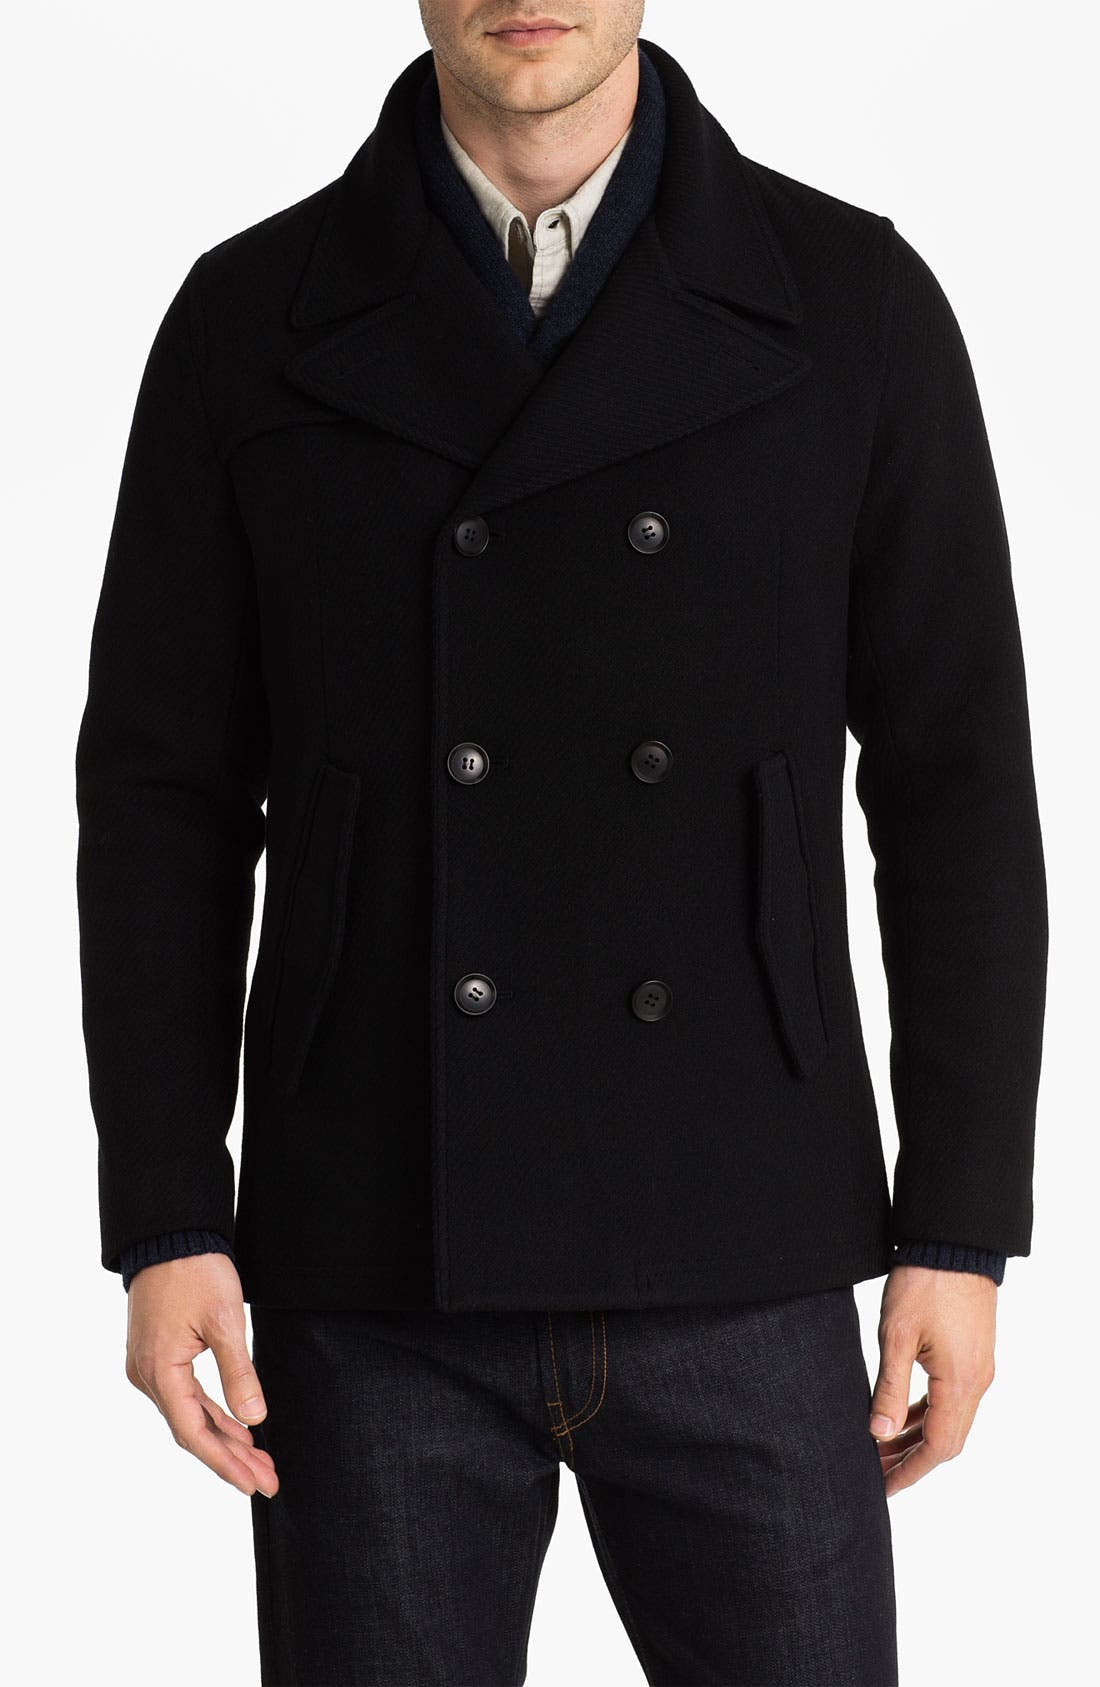 Main Image - Zachary Prell 'Franklin' Double Breasted Wool Blend Coat